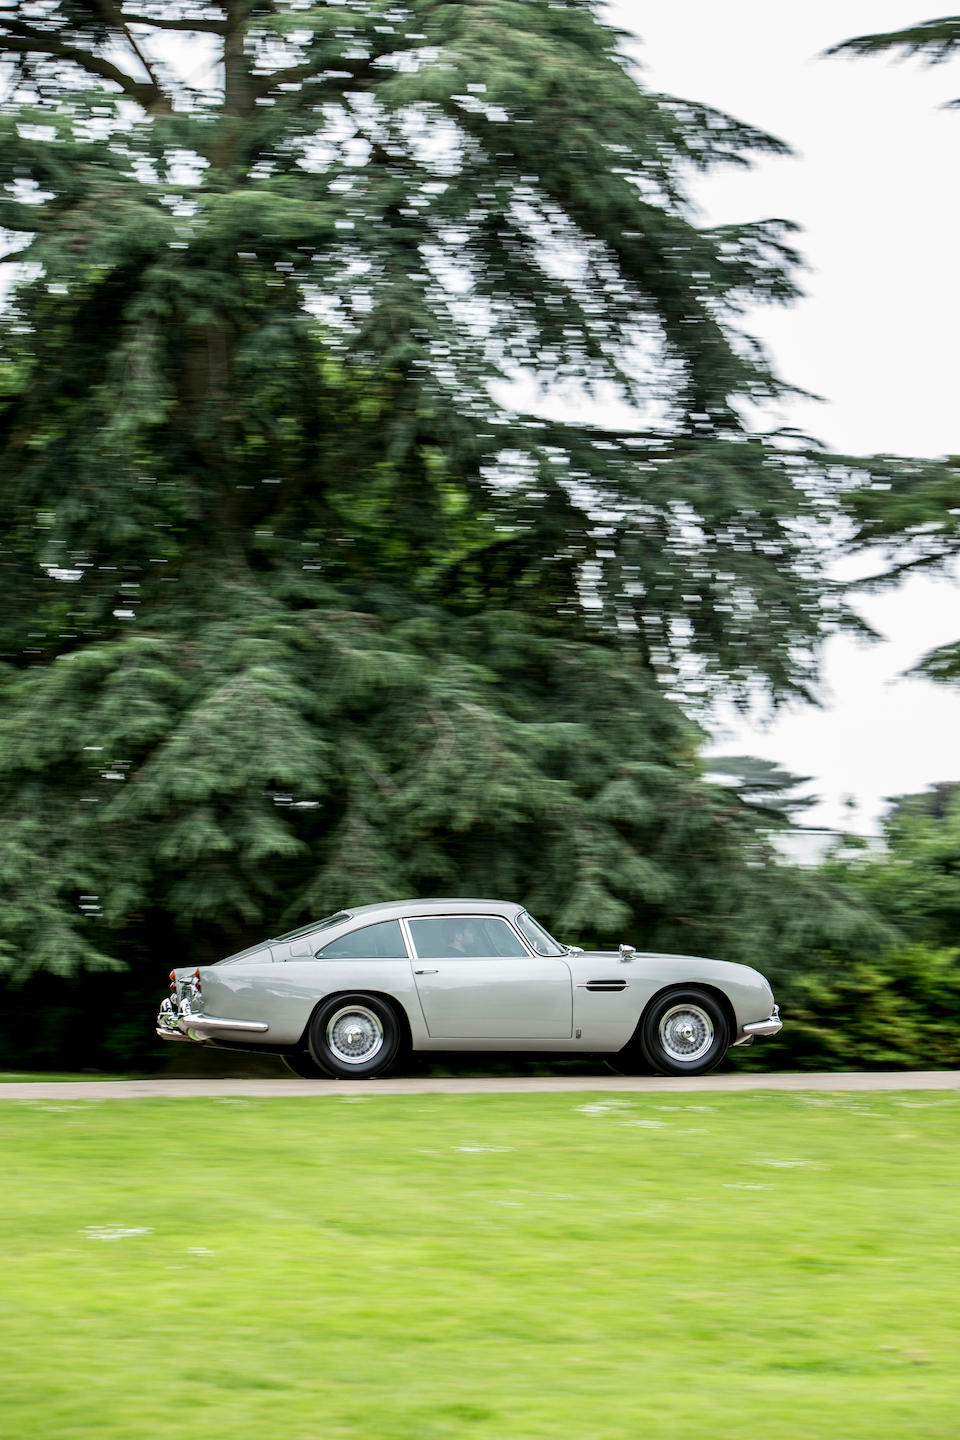 The ex-Eon Productions and as featured in the Motion Picture 'GoldenEye' driven by Pierce Brosnan as James Bond 1965  Aston Martin DB5 Sports Saloon  Chassis no. DB5/1885/R